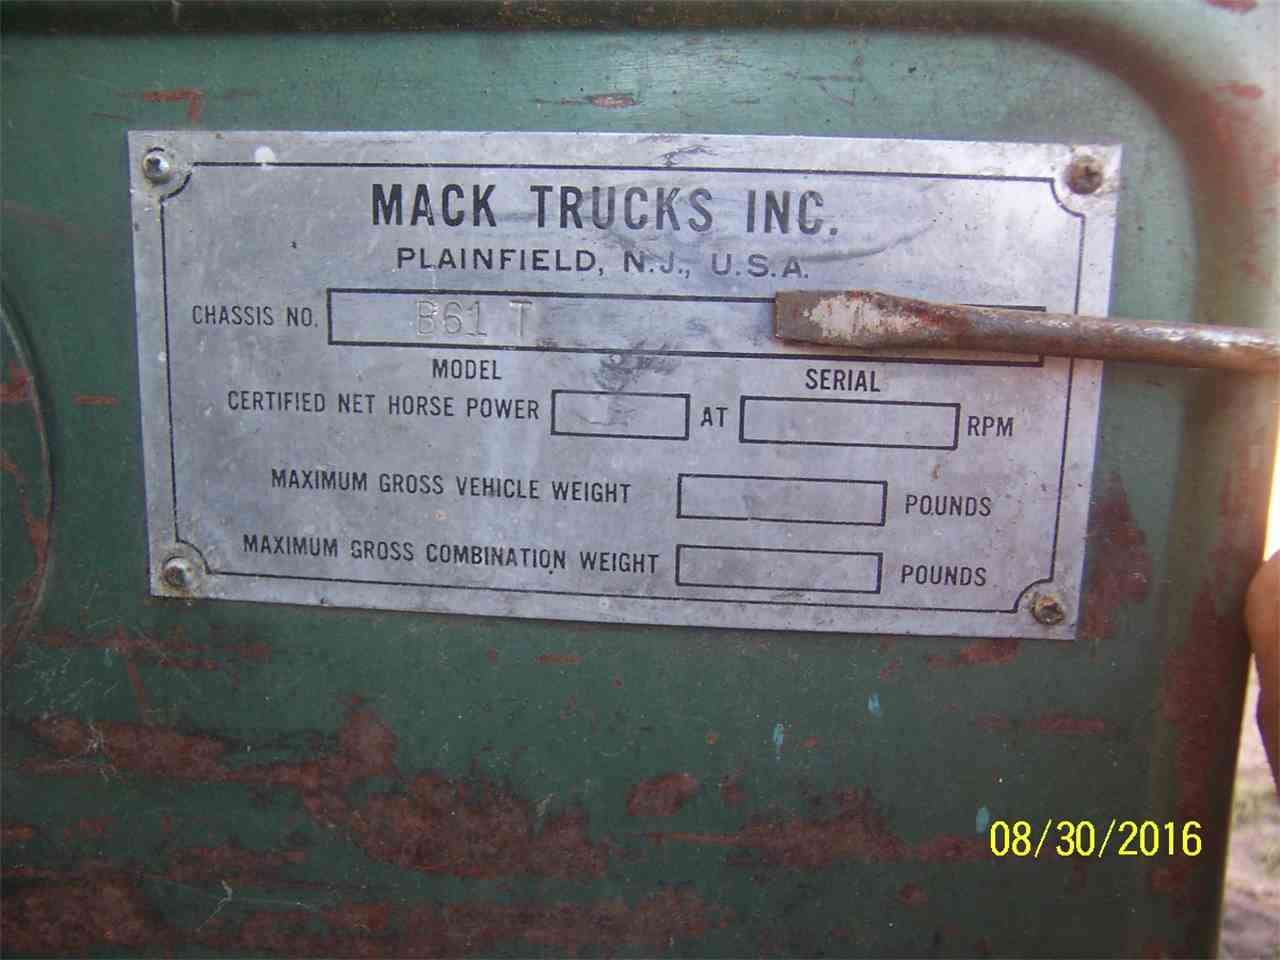 1957 Mack B61 Truck for Sale | ClassicCars.com | CC-975508